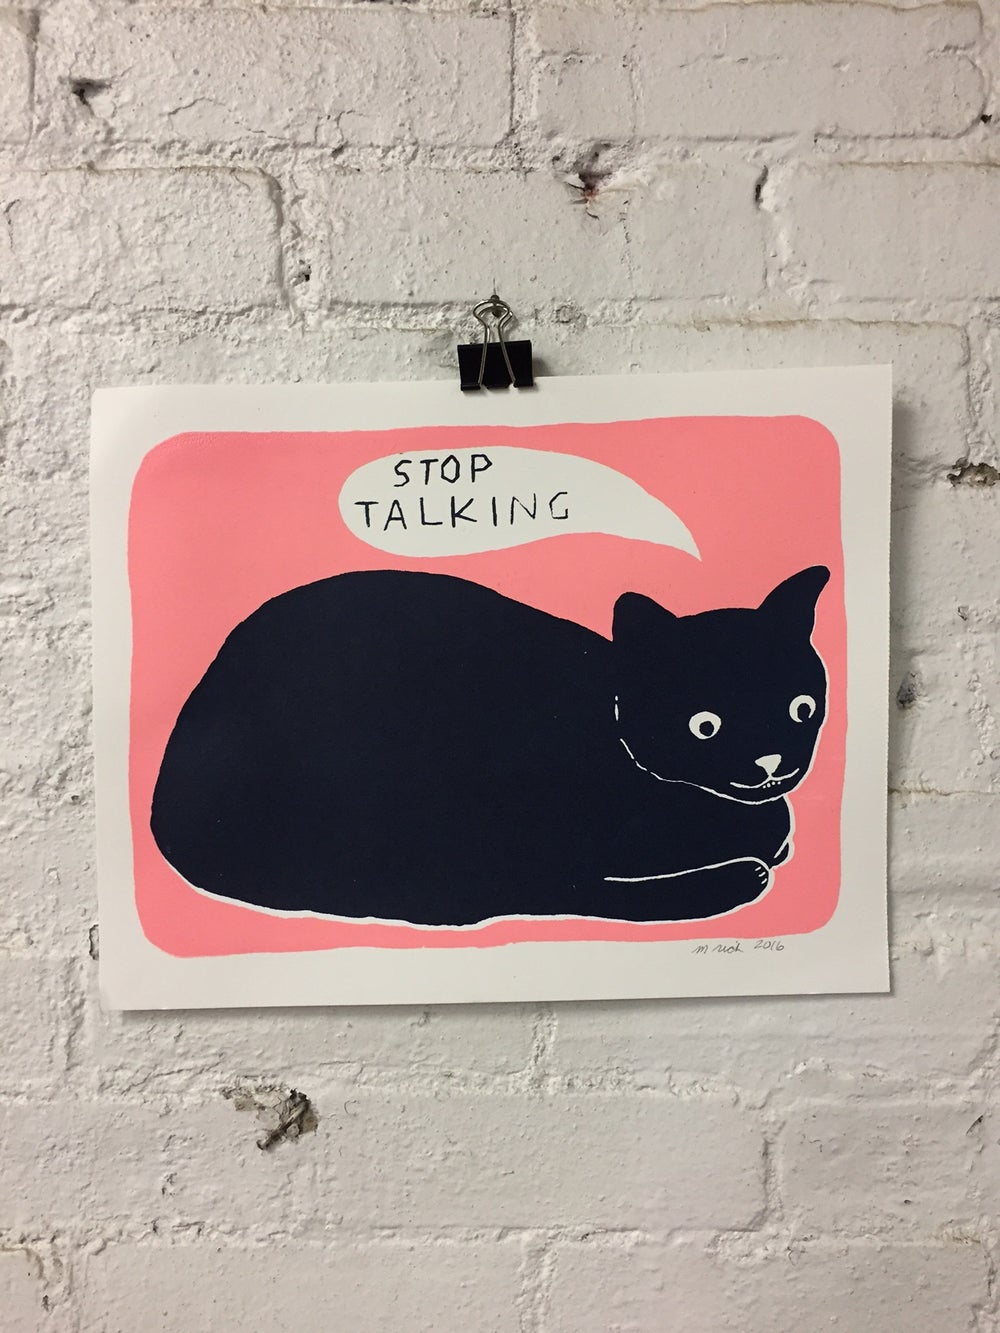 Image of stop talking